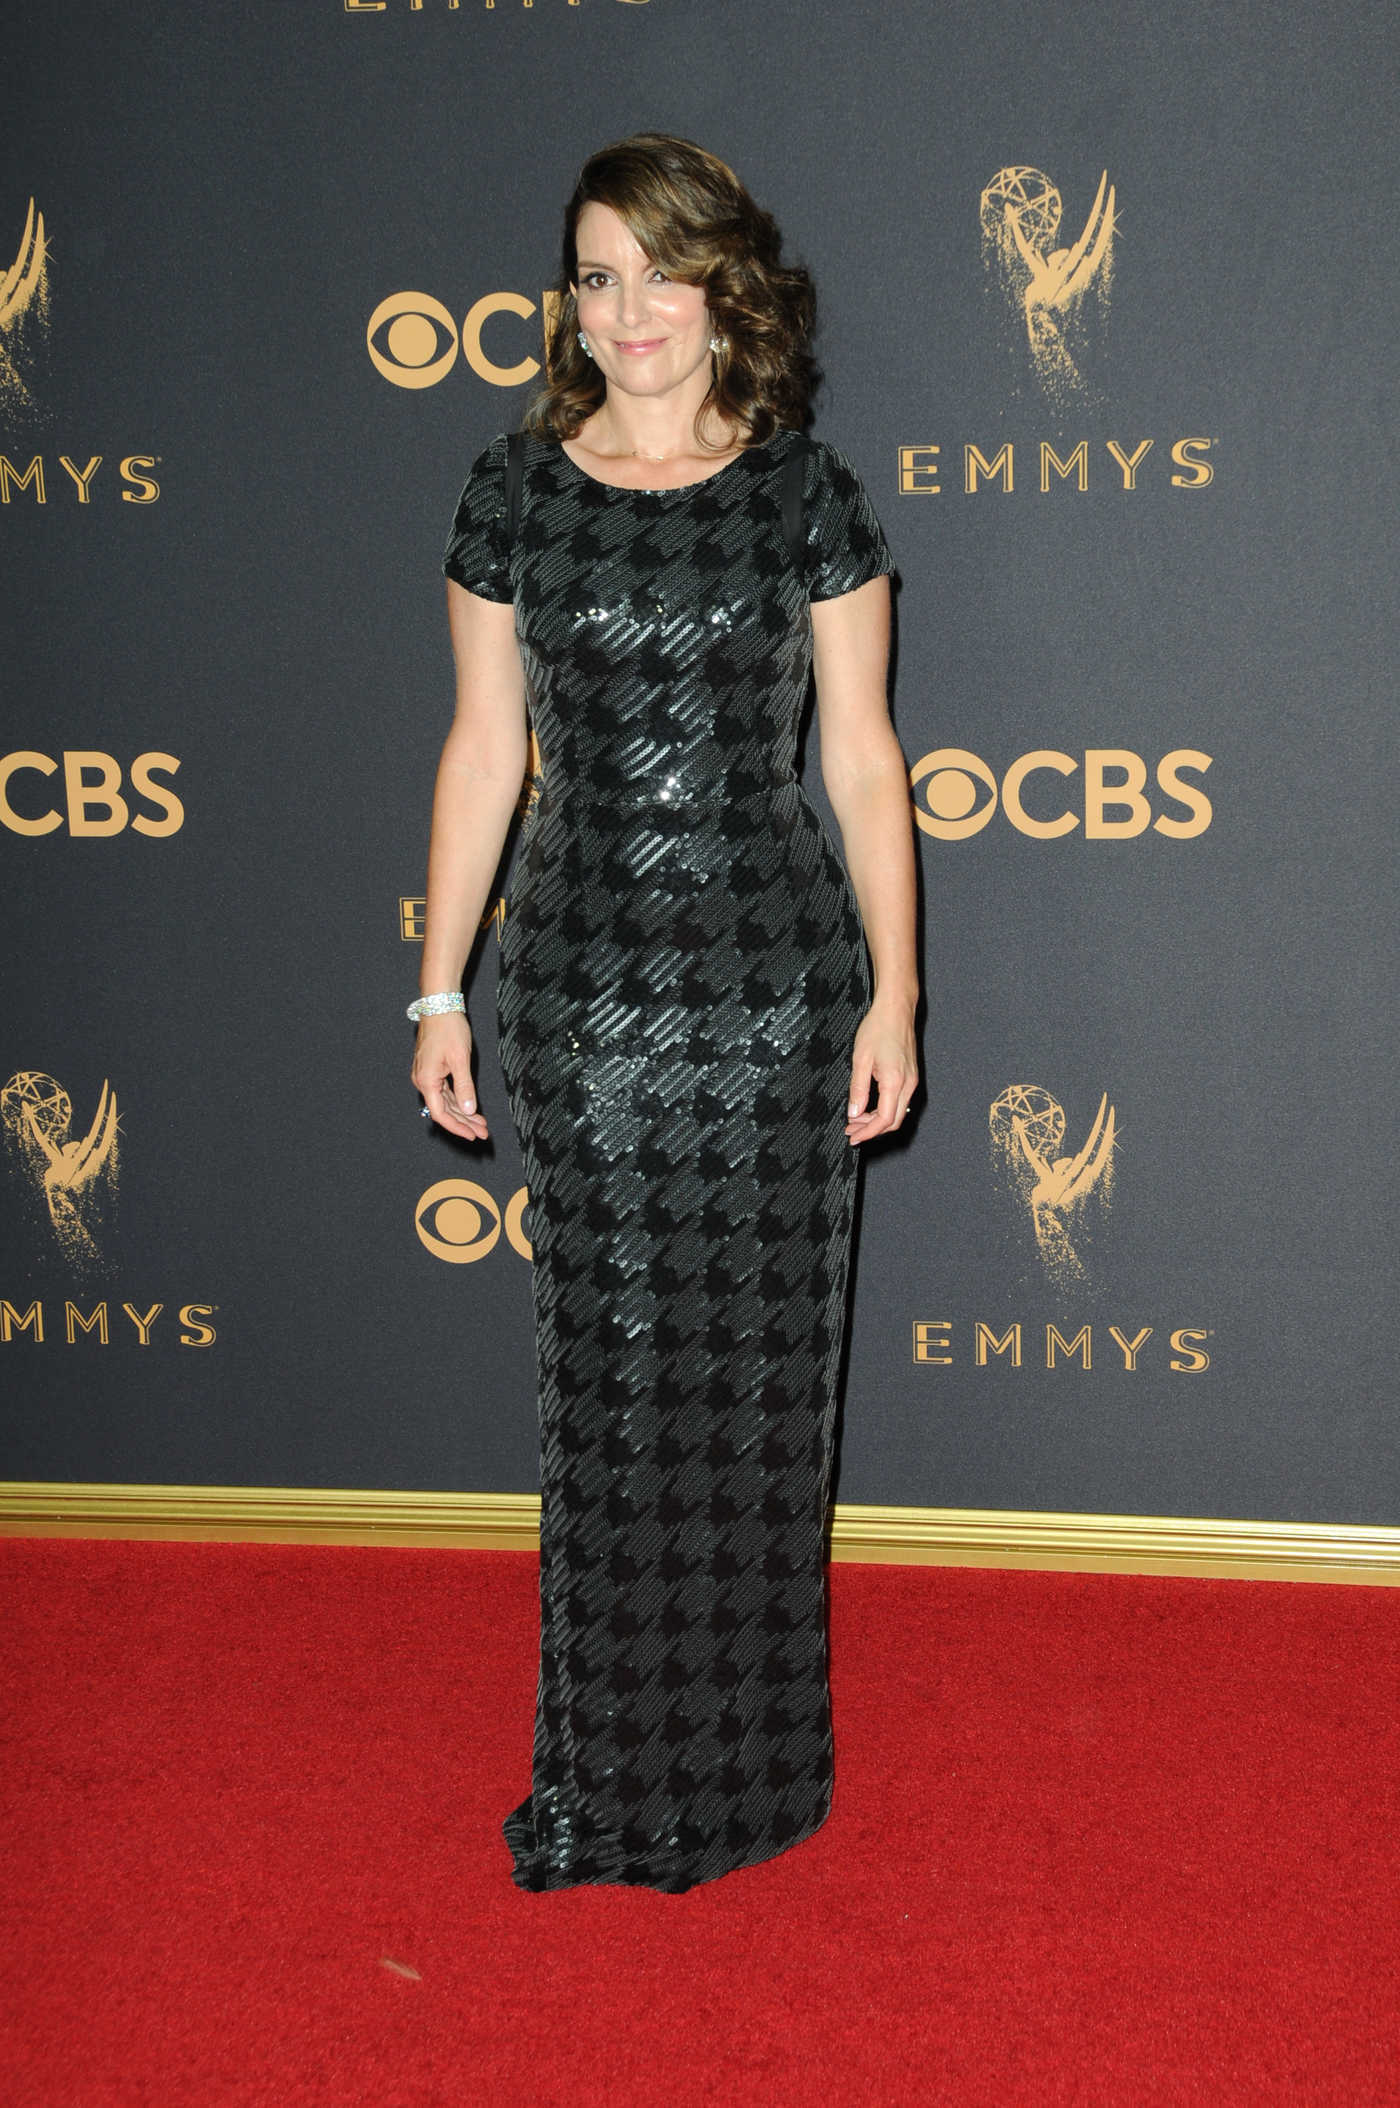 Tina Fey at the 69th Annual Primetime Emmy Awards in Los Angeles 09/17/2017